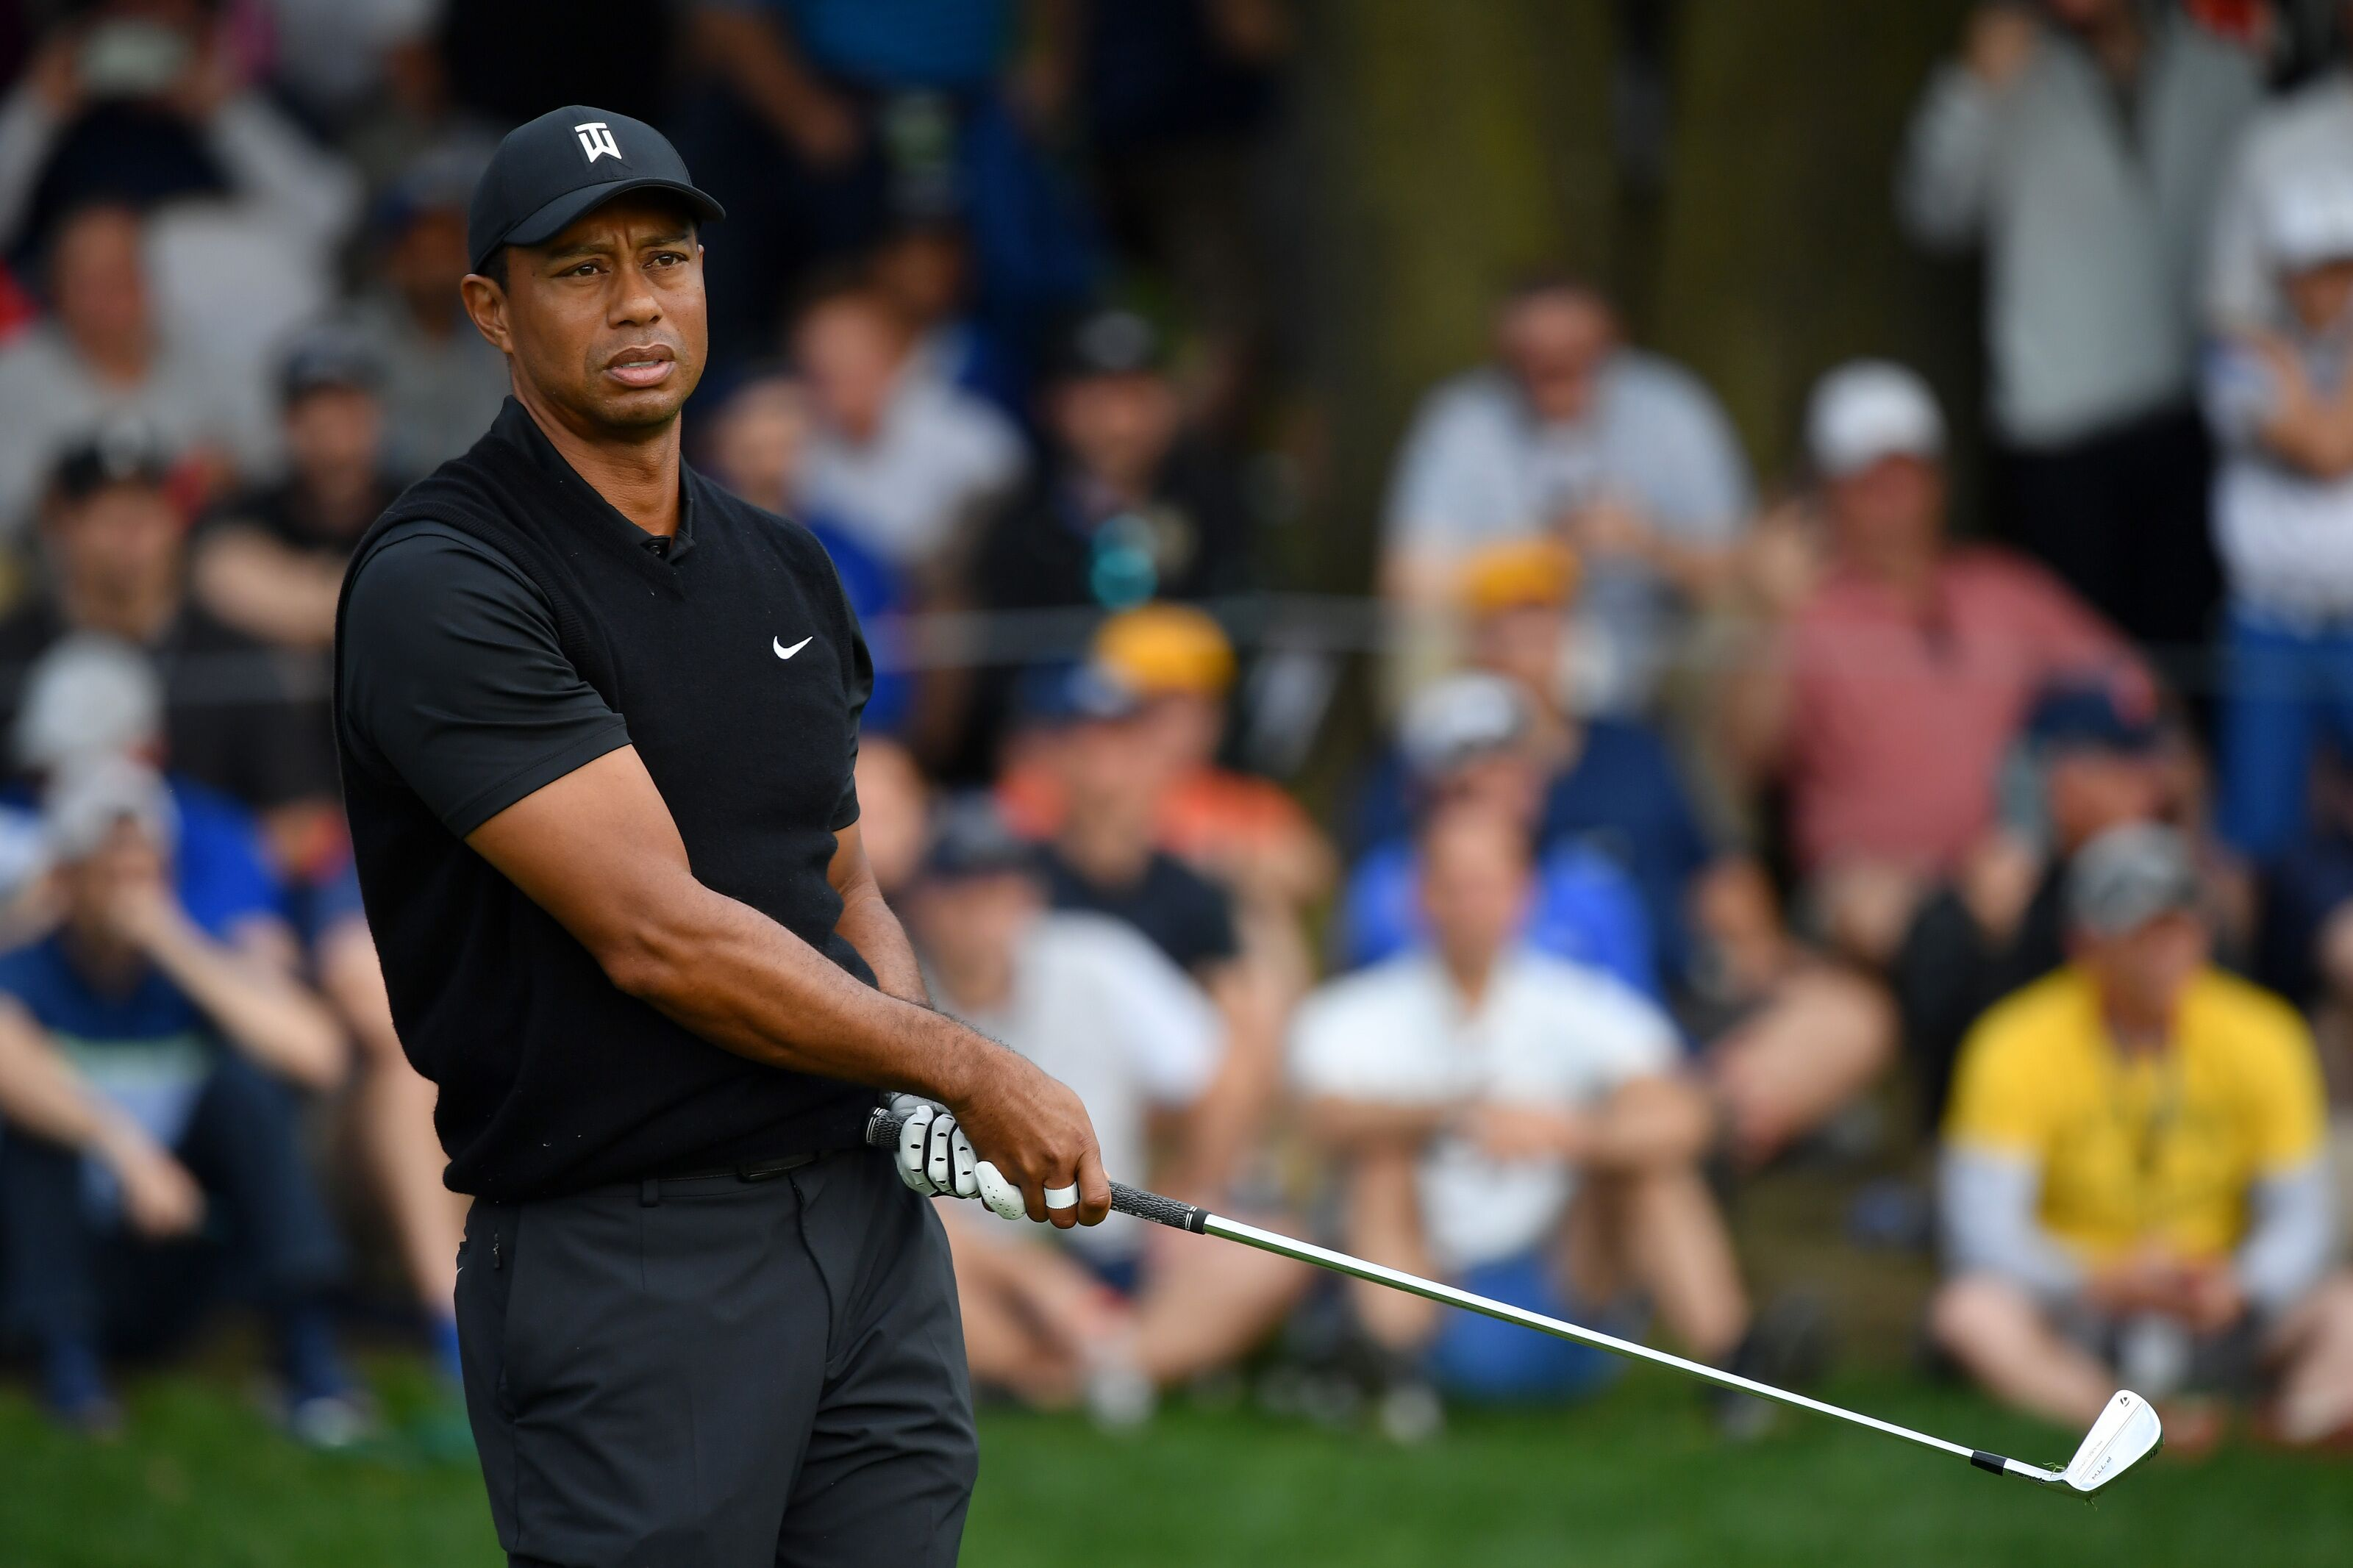 Tiger Woods' PGA Championship comes to early end after missed cut